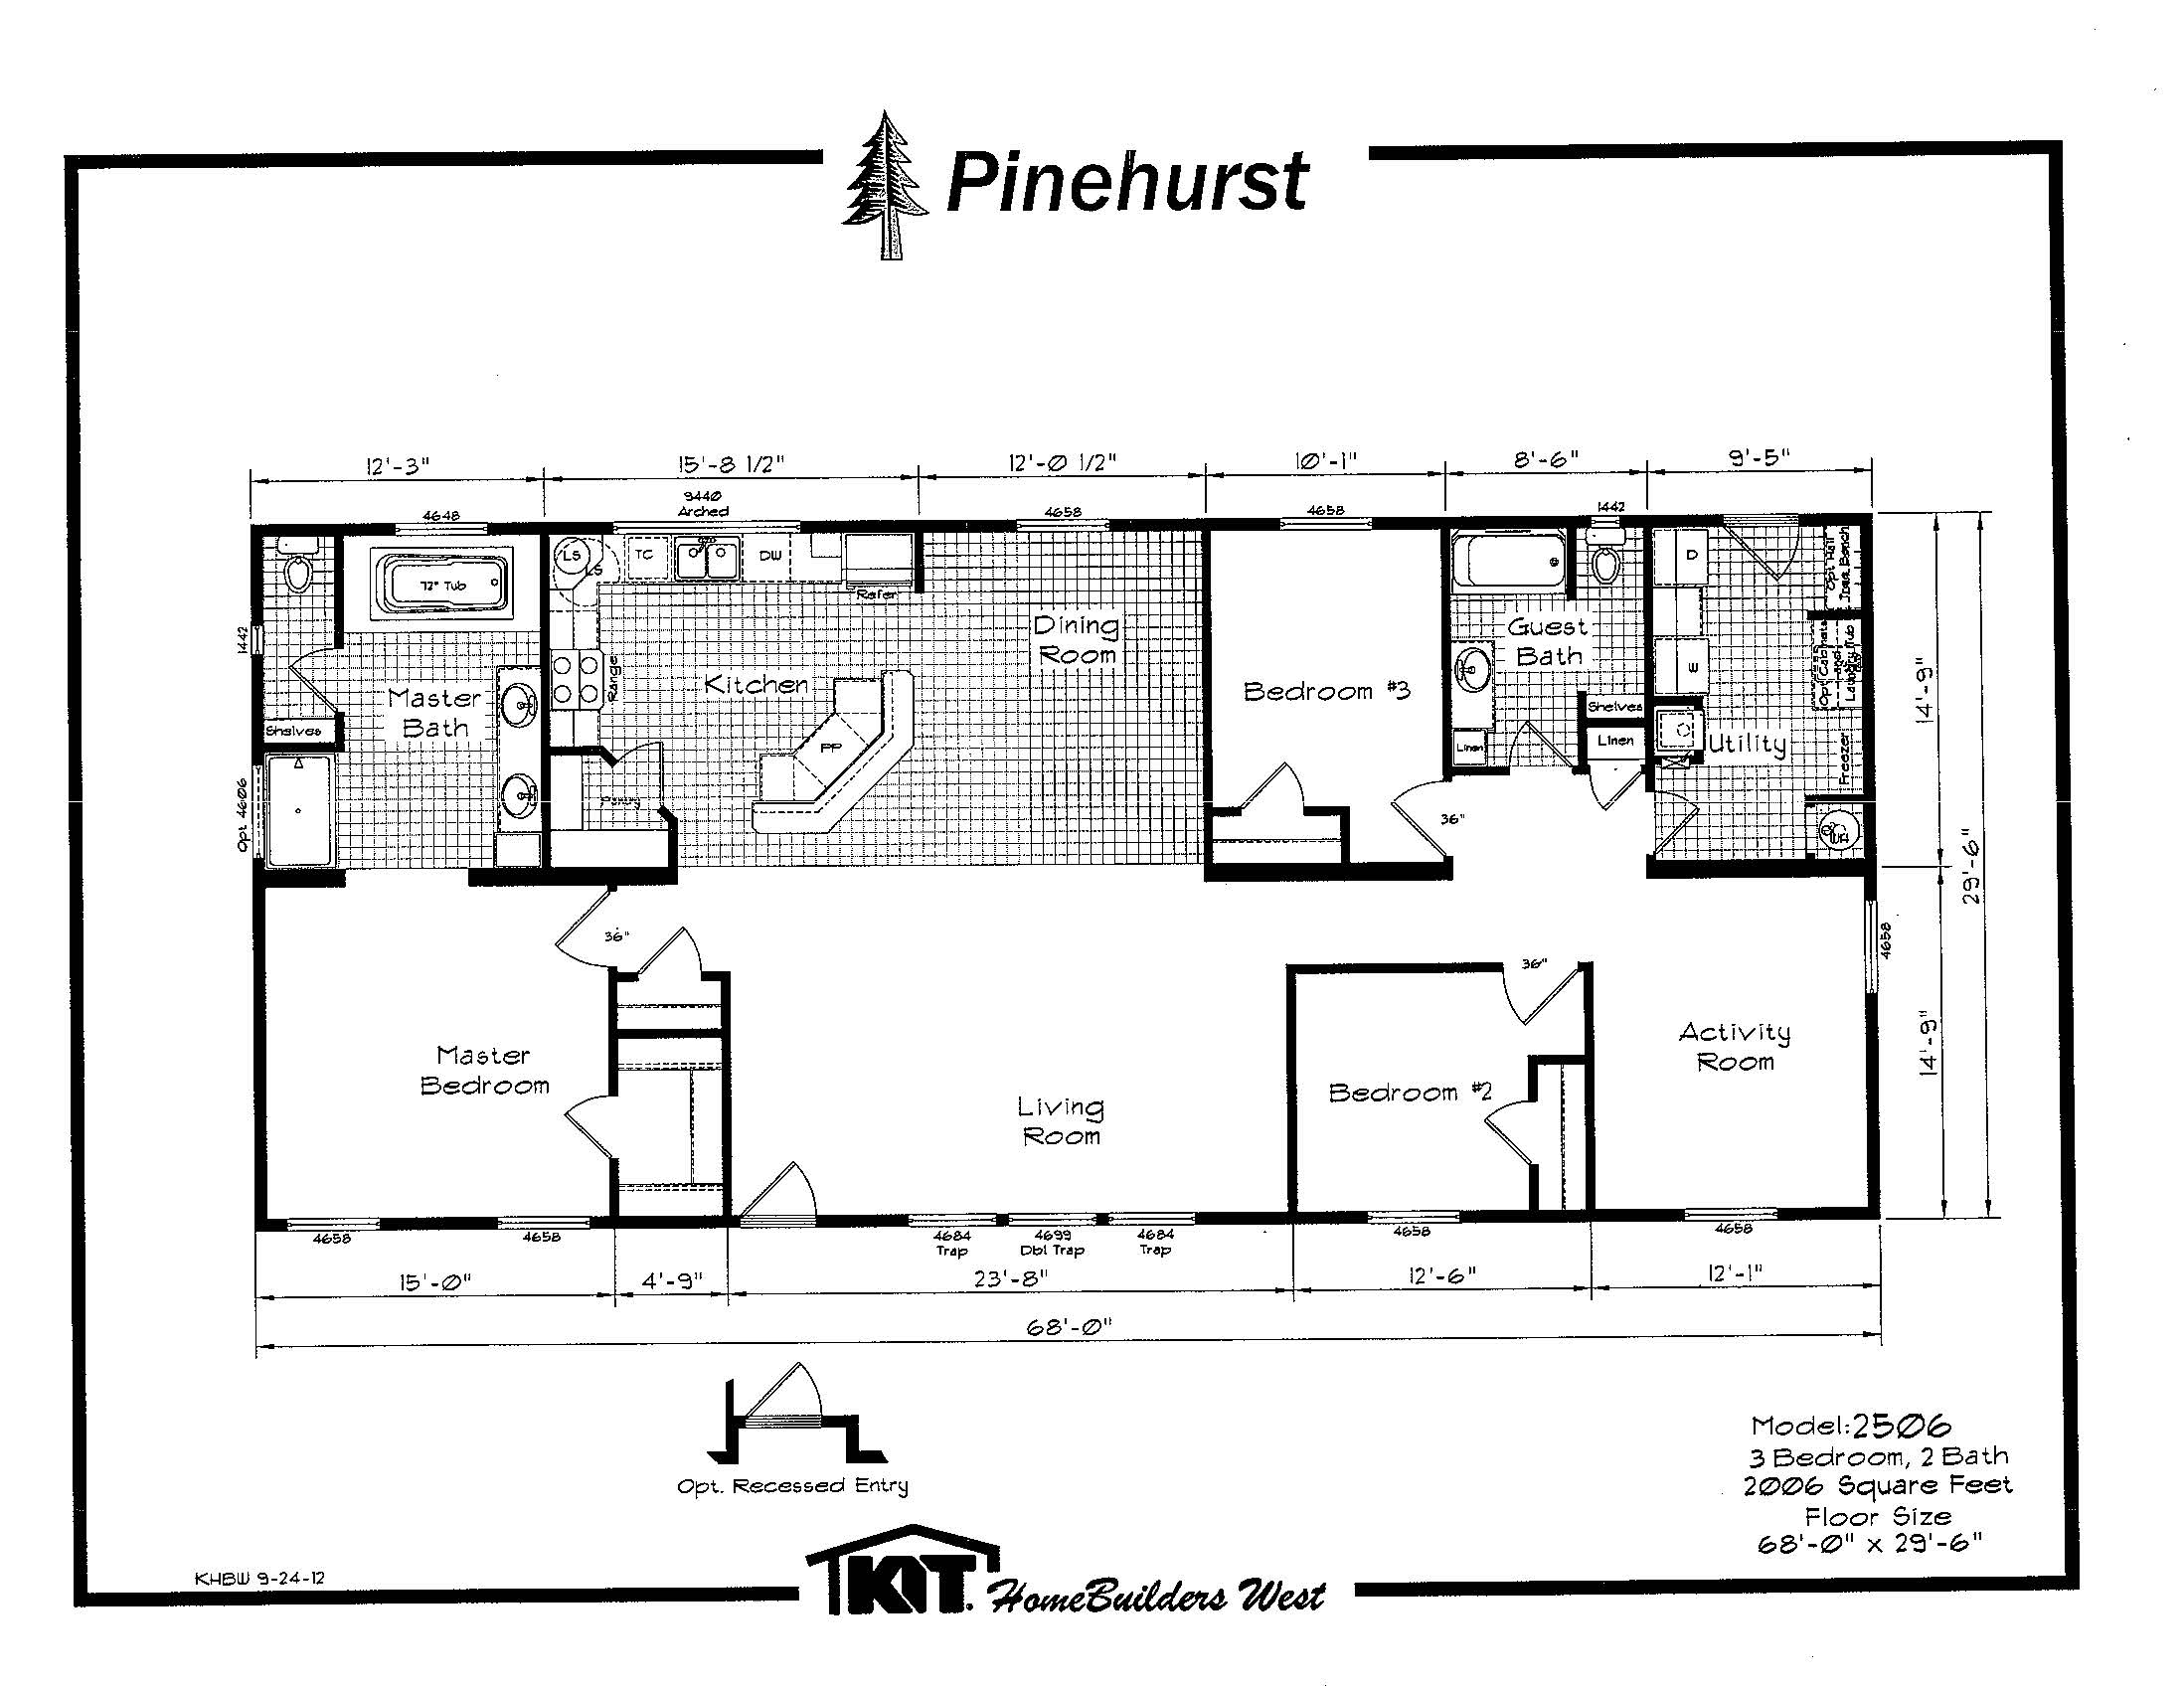 pinehurst floor plans wp homes floor home plans ideas picture avalanche manufactured homes floor plans 20th century homes